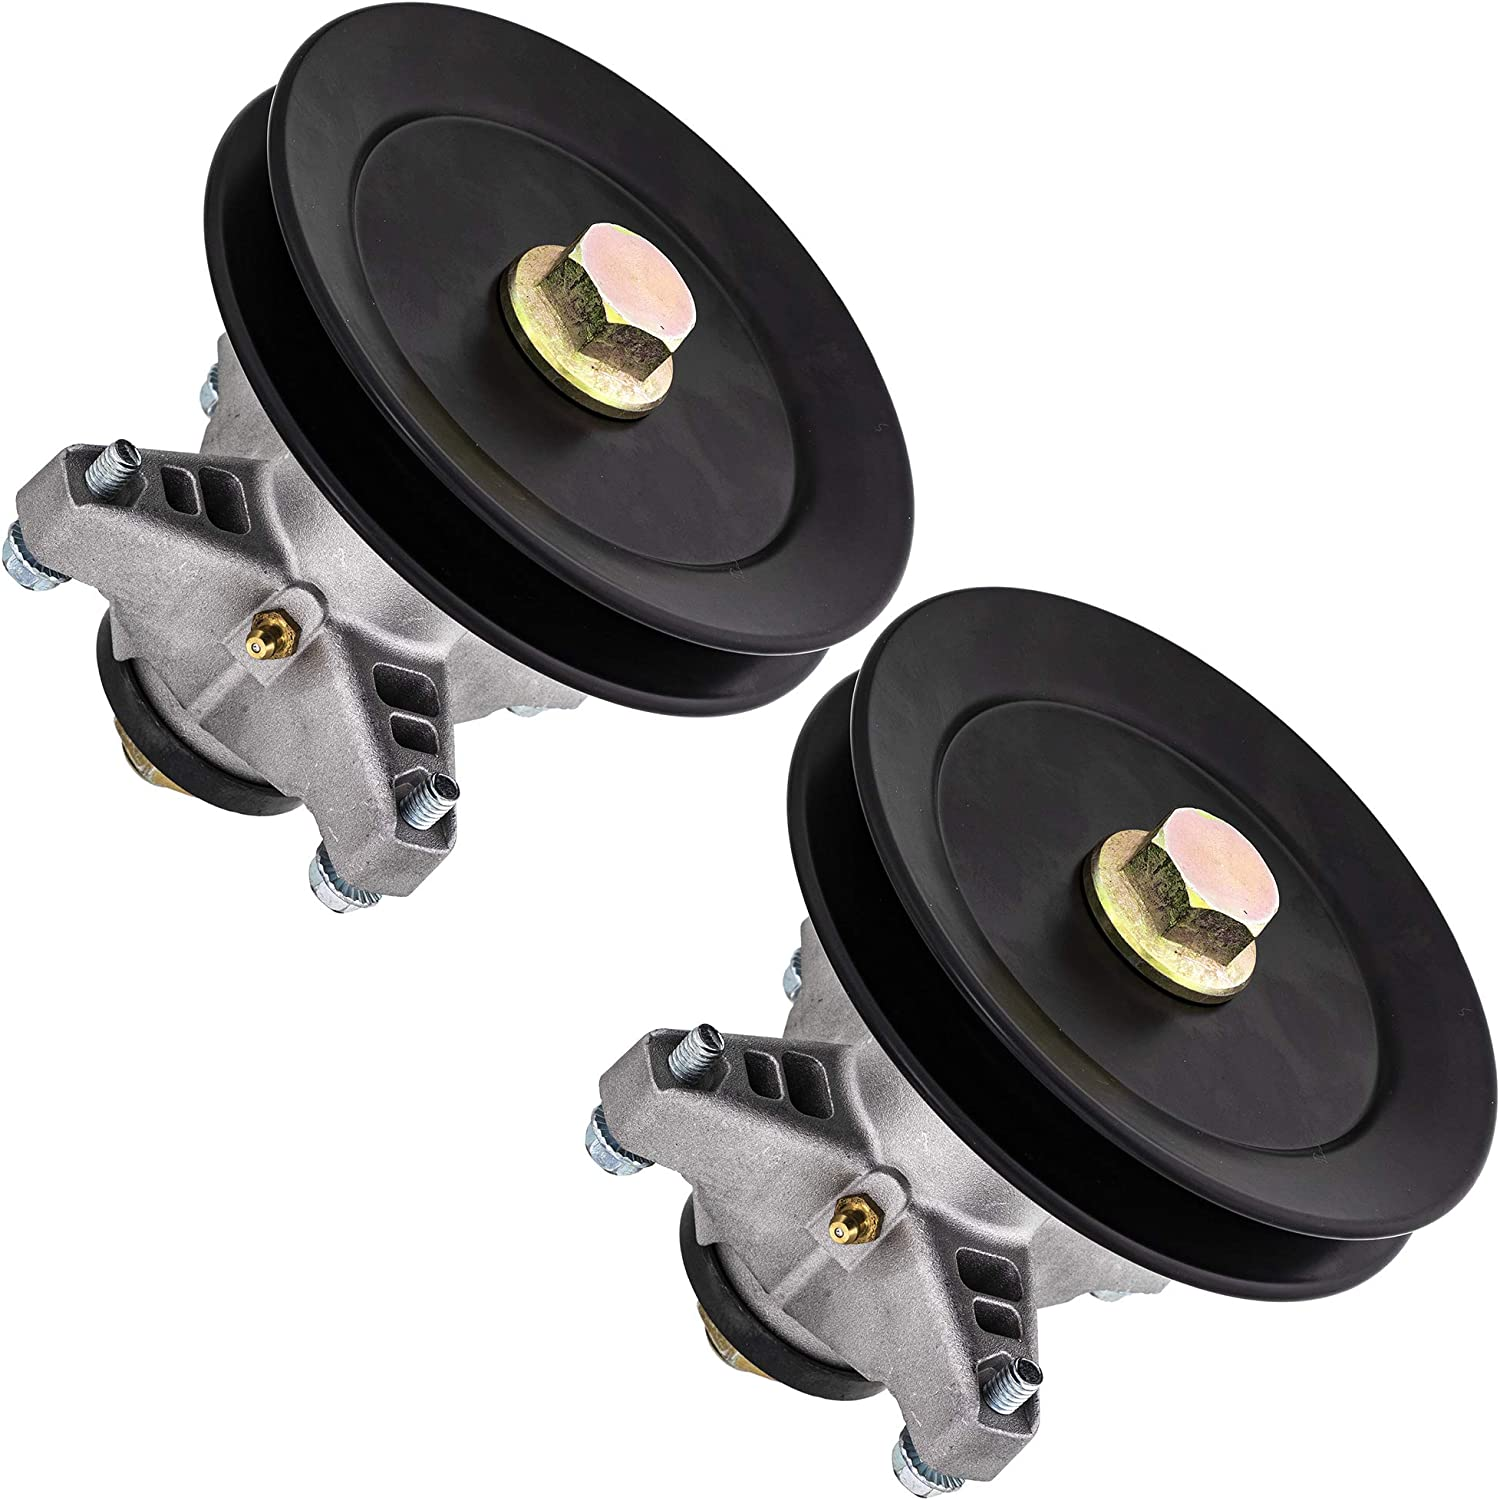 8TEN Spindle Assembly for MTD Cub Cadet 42 Inch Deck LT1042 Mower 618-04124A 918-04124A 2 Pack